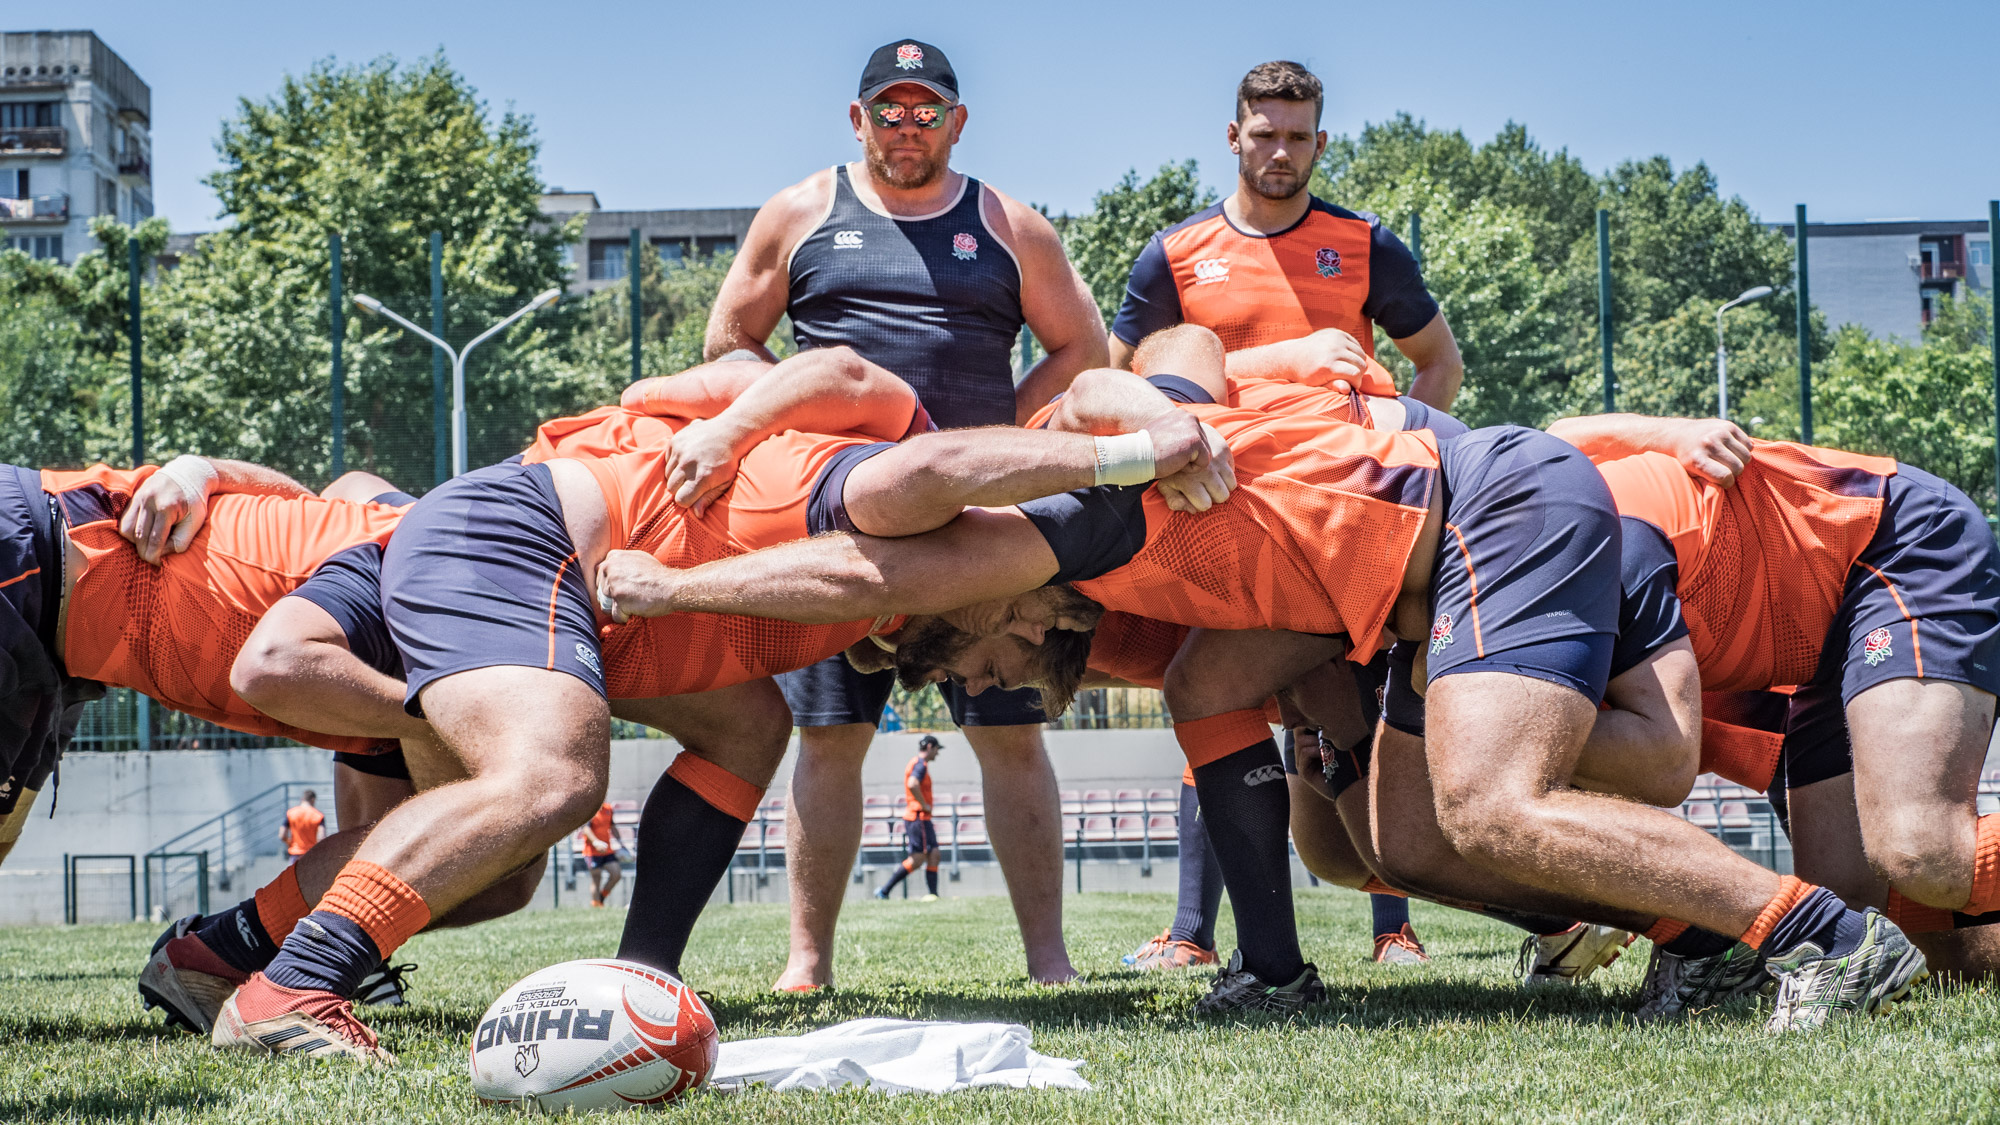 Back to the training: here are the forwards working hard in the scrum